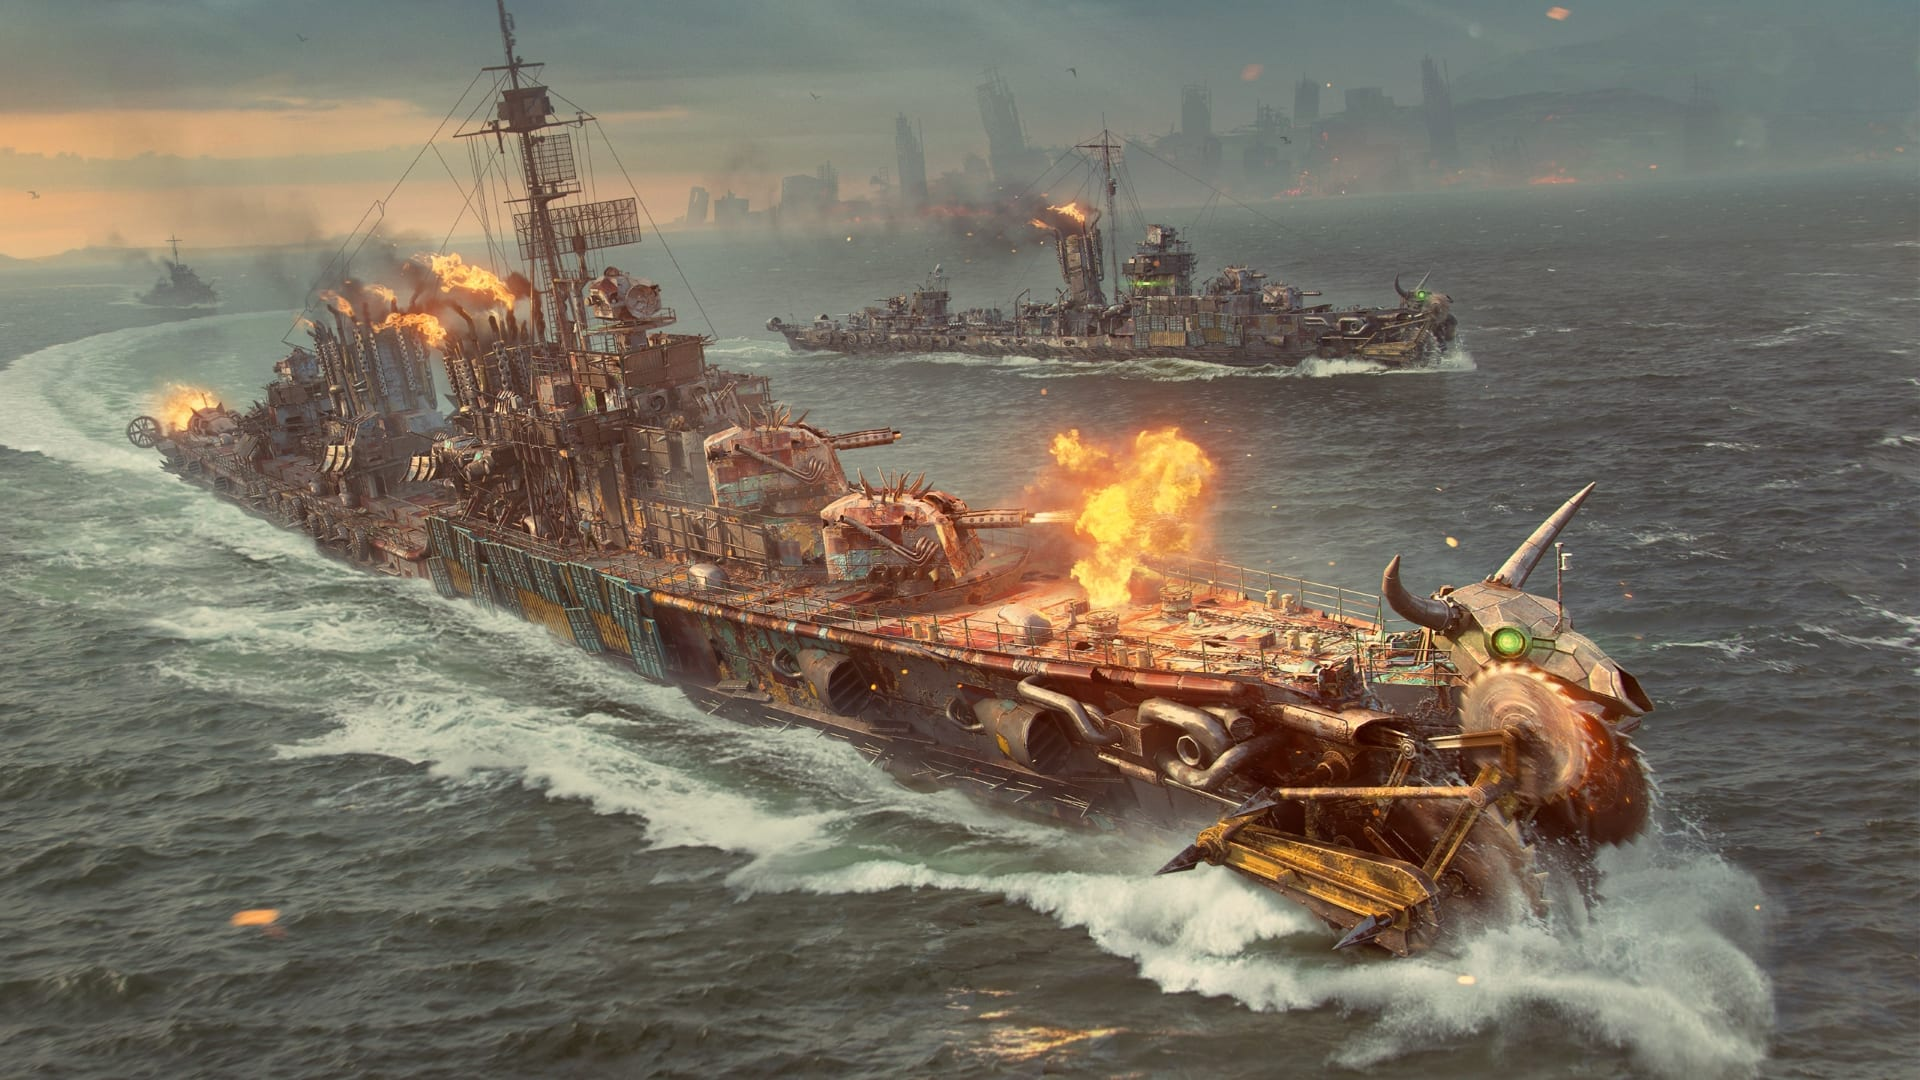 World of Warships - Battle royale mode in a new post-apocalyptic world goes live - MMO Culture